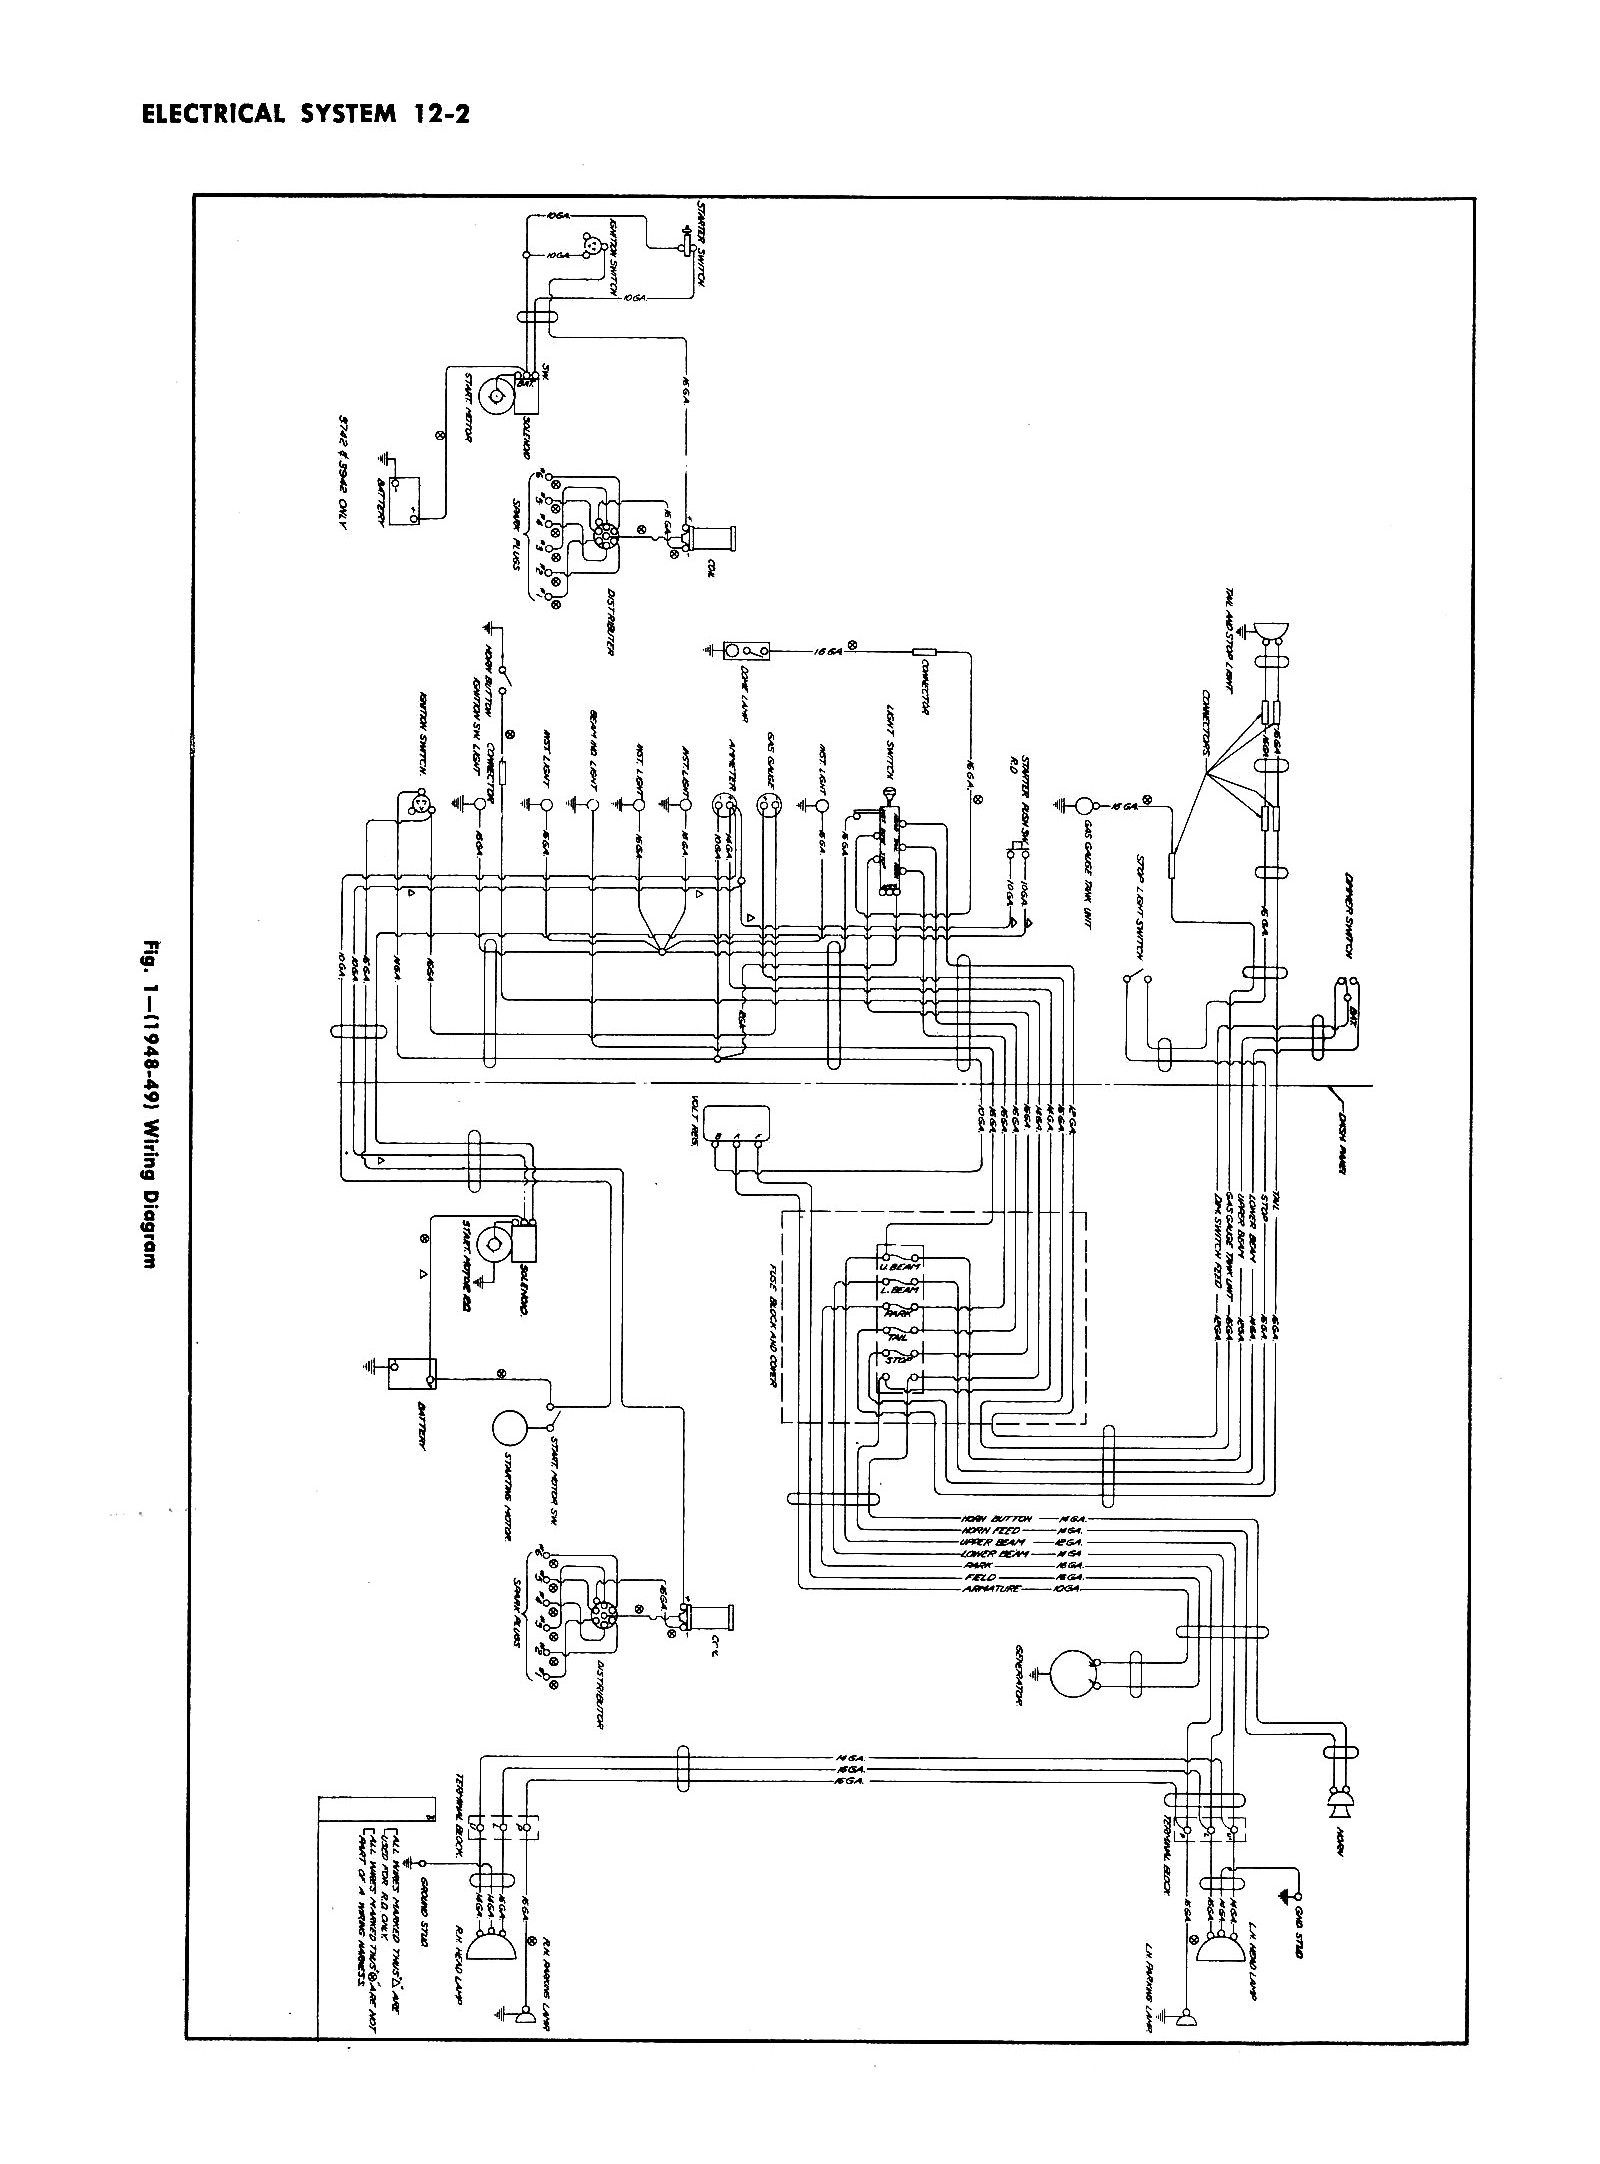 48car chevy wiring diagrams 1996 chevy truck wiring diagram at gsmx.co